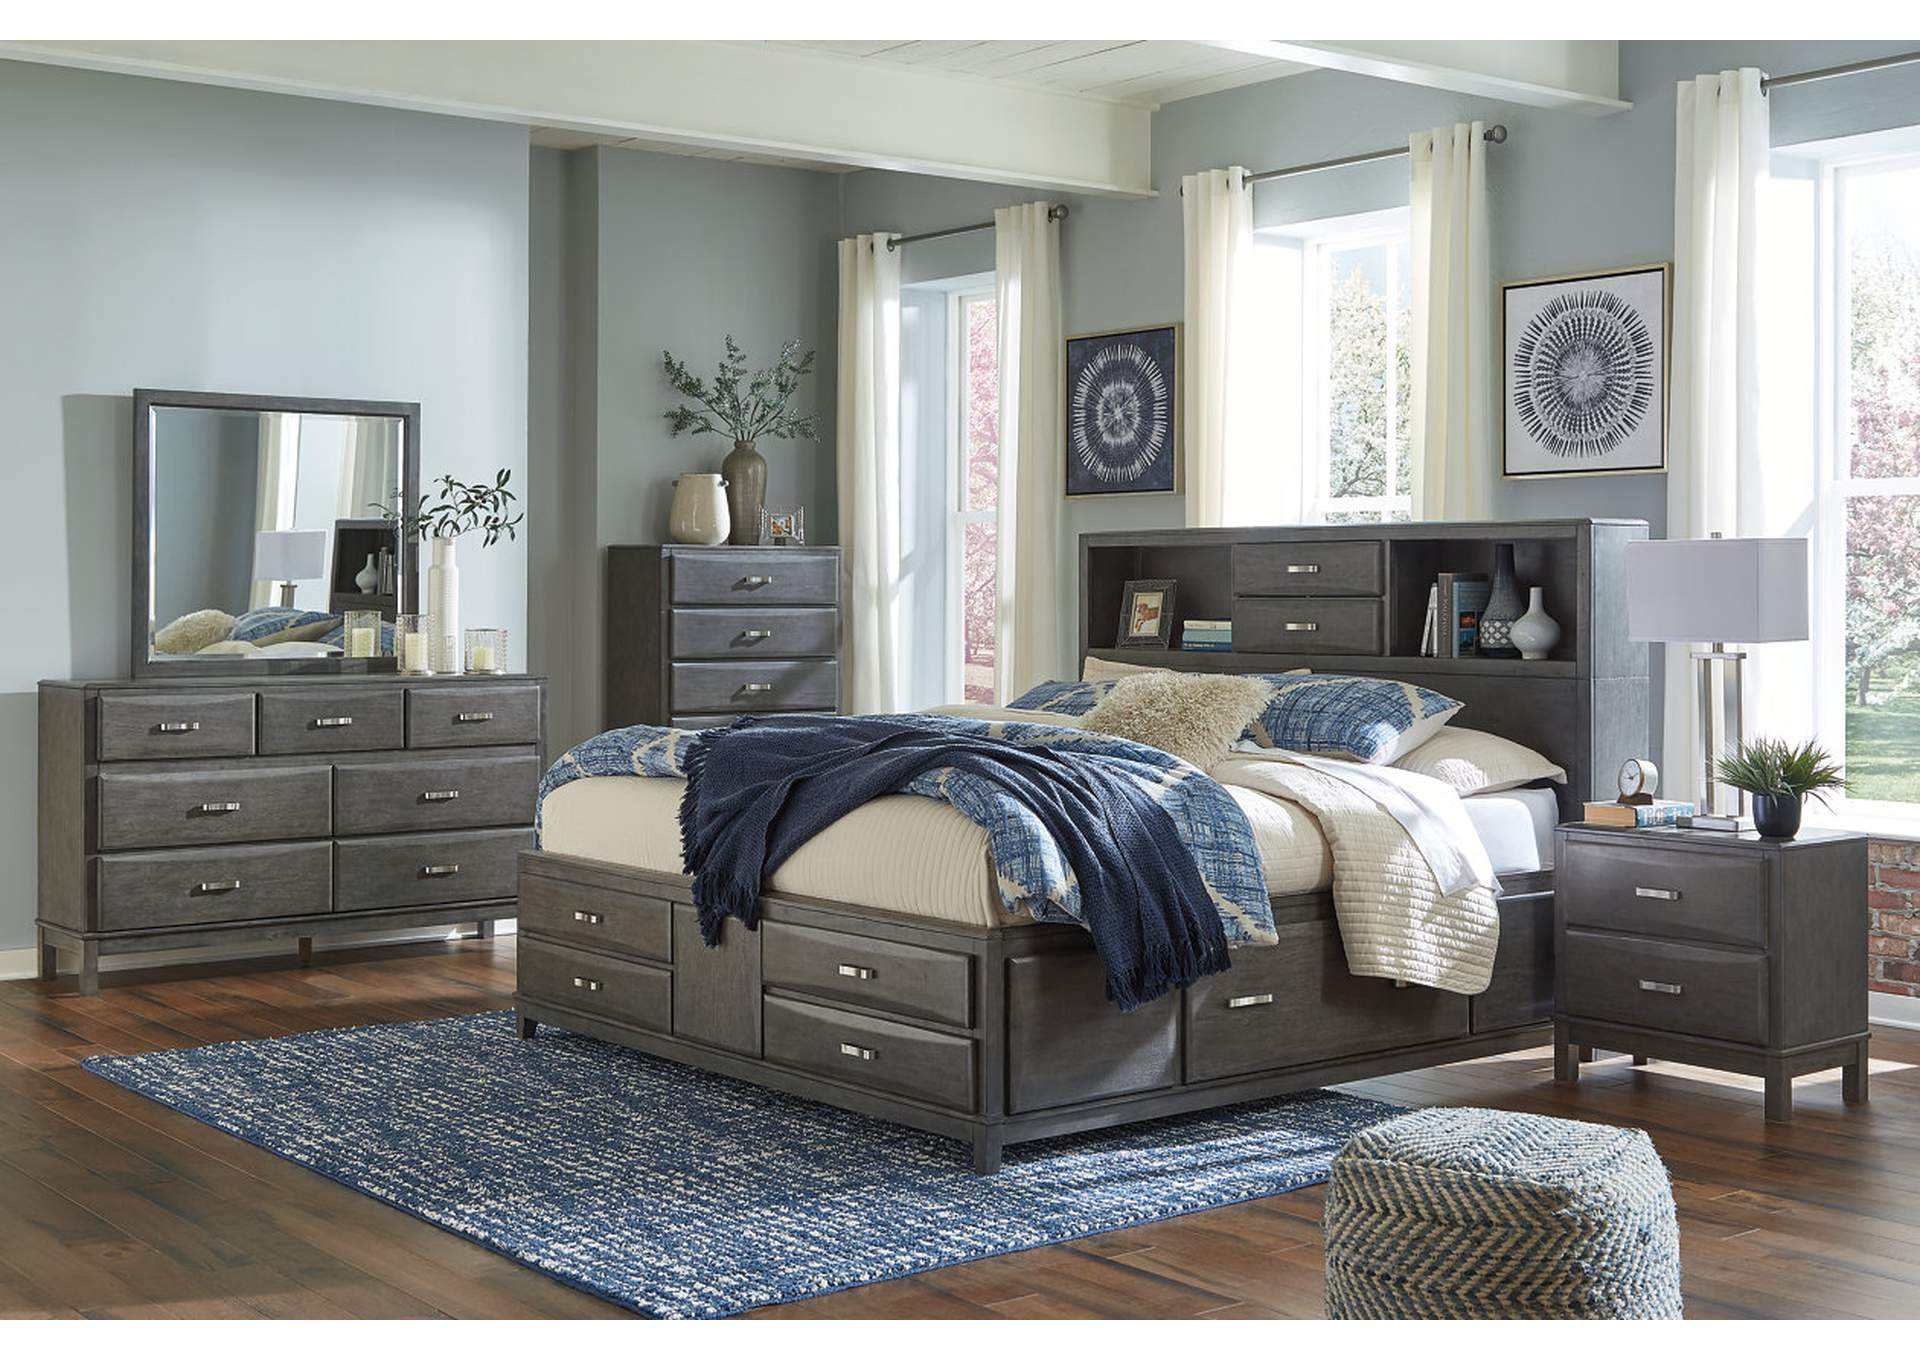 Caitbrook King Storage Bed w/Dresser and Mirror,Signature Design By Ashley